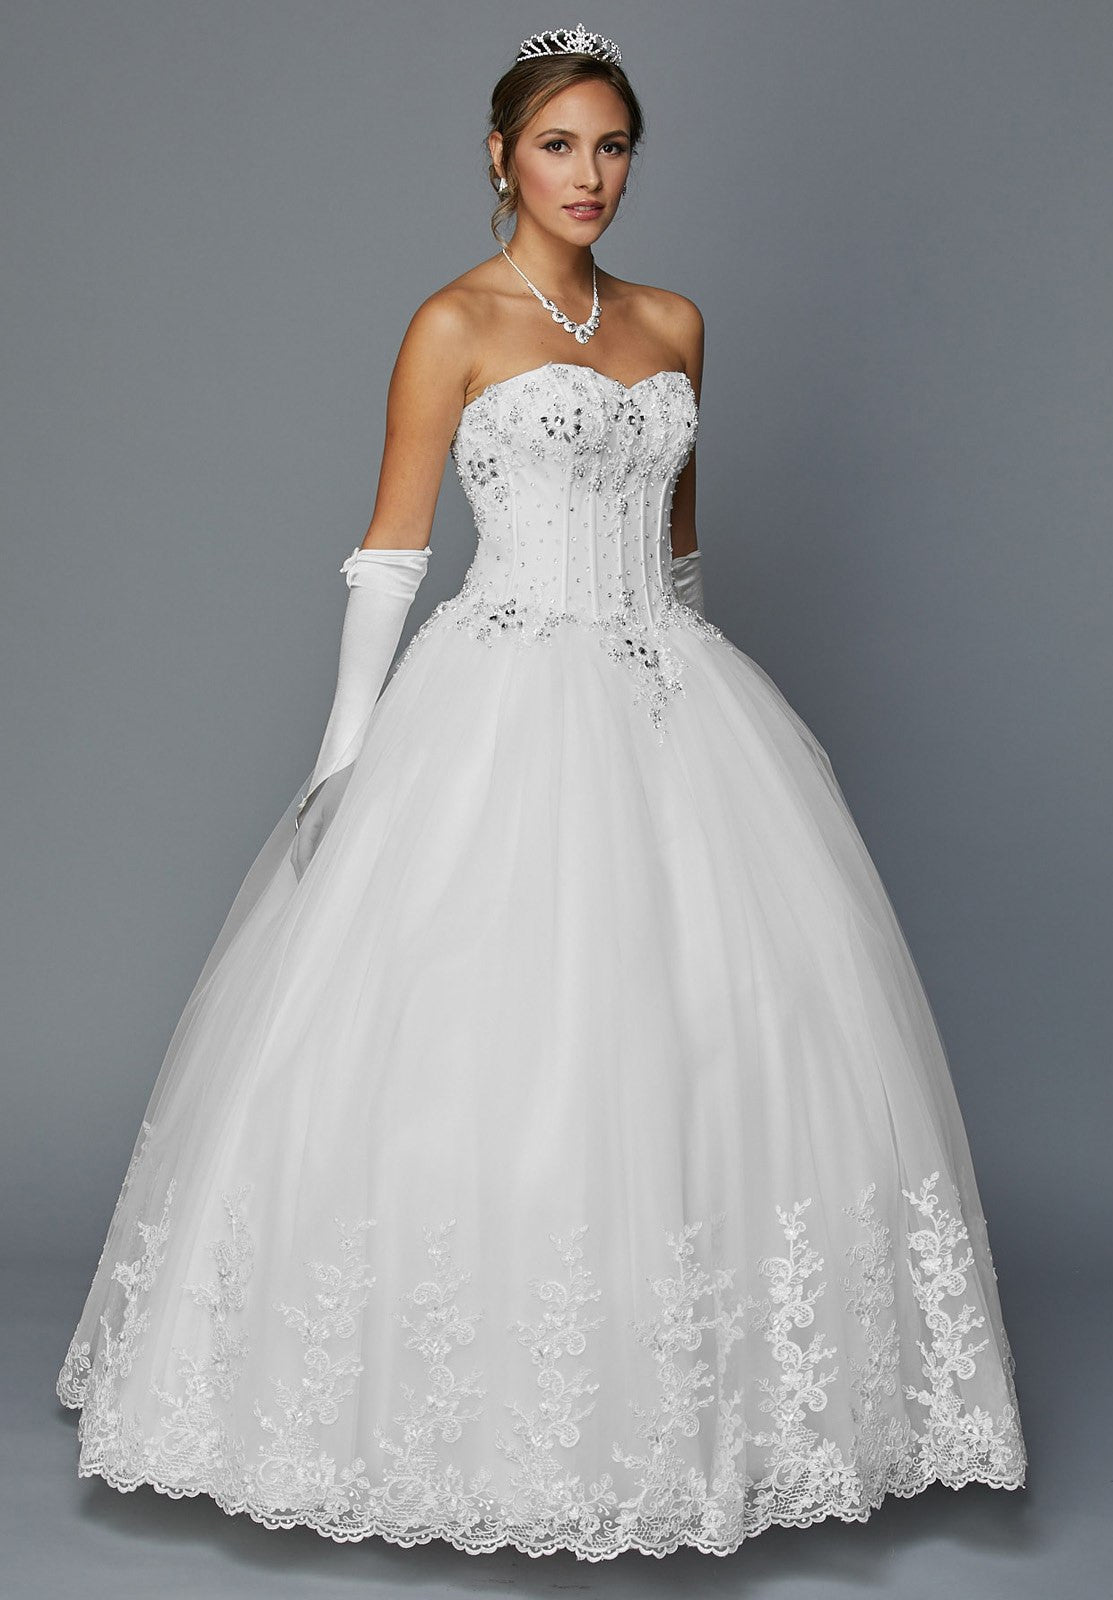 Juliet 352 Jewel Bodice Strapless Ball Gown Wedding Dress White ...